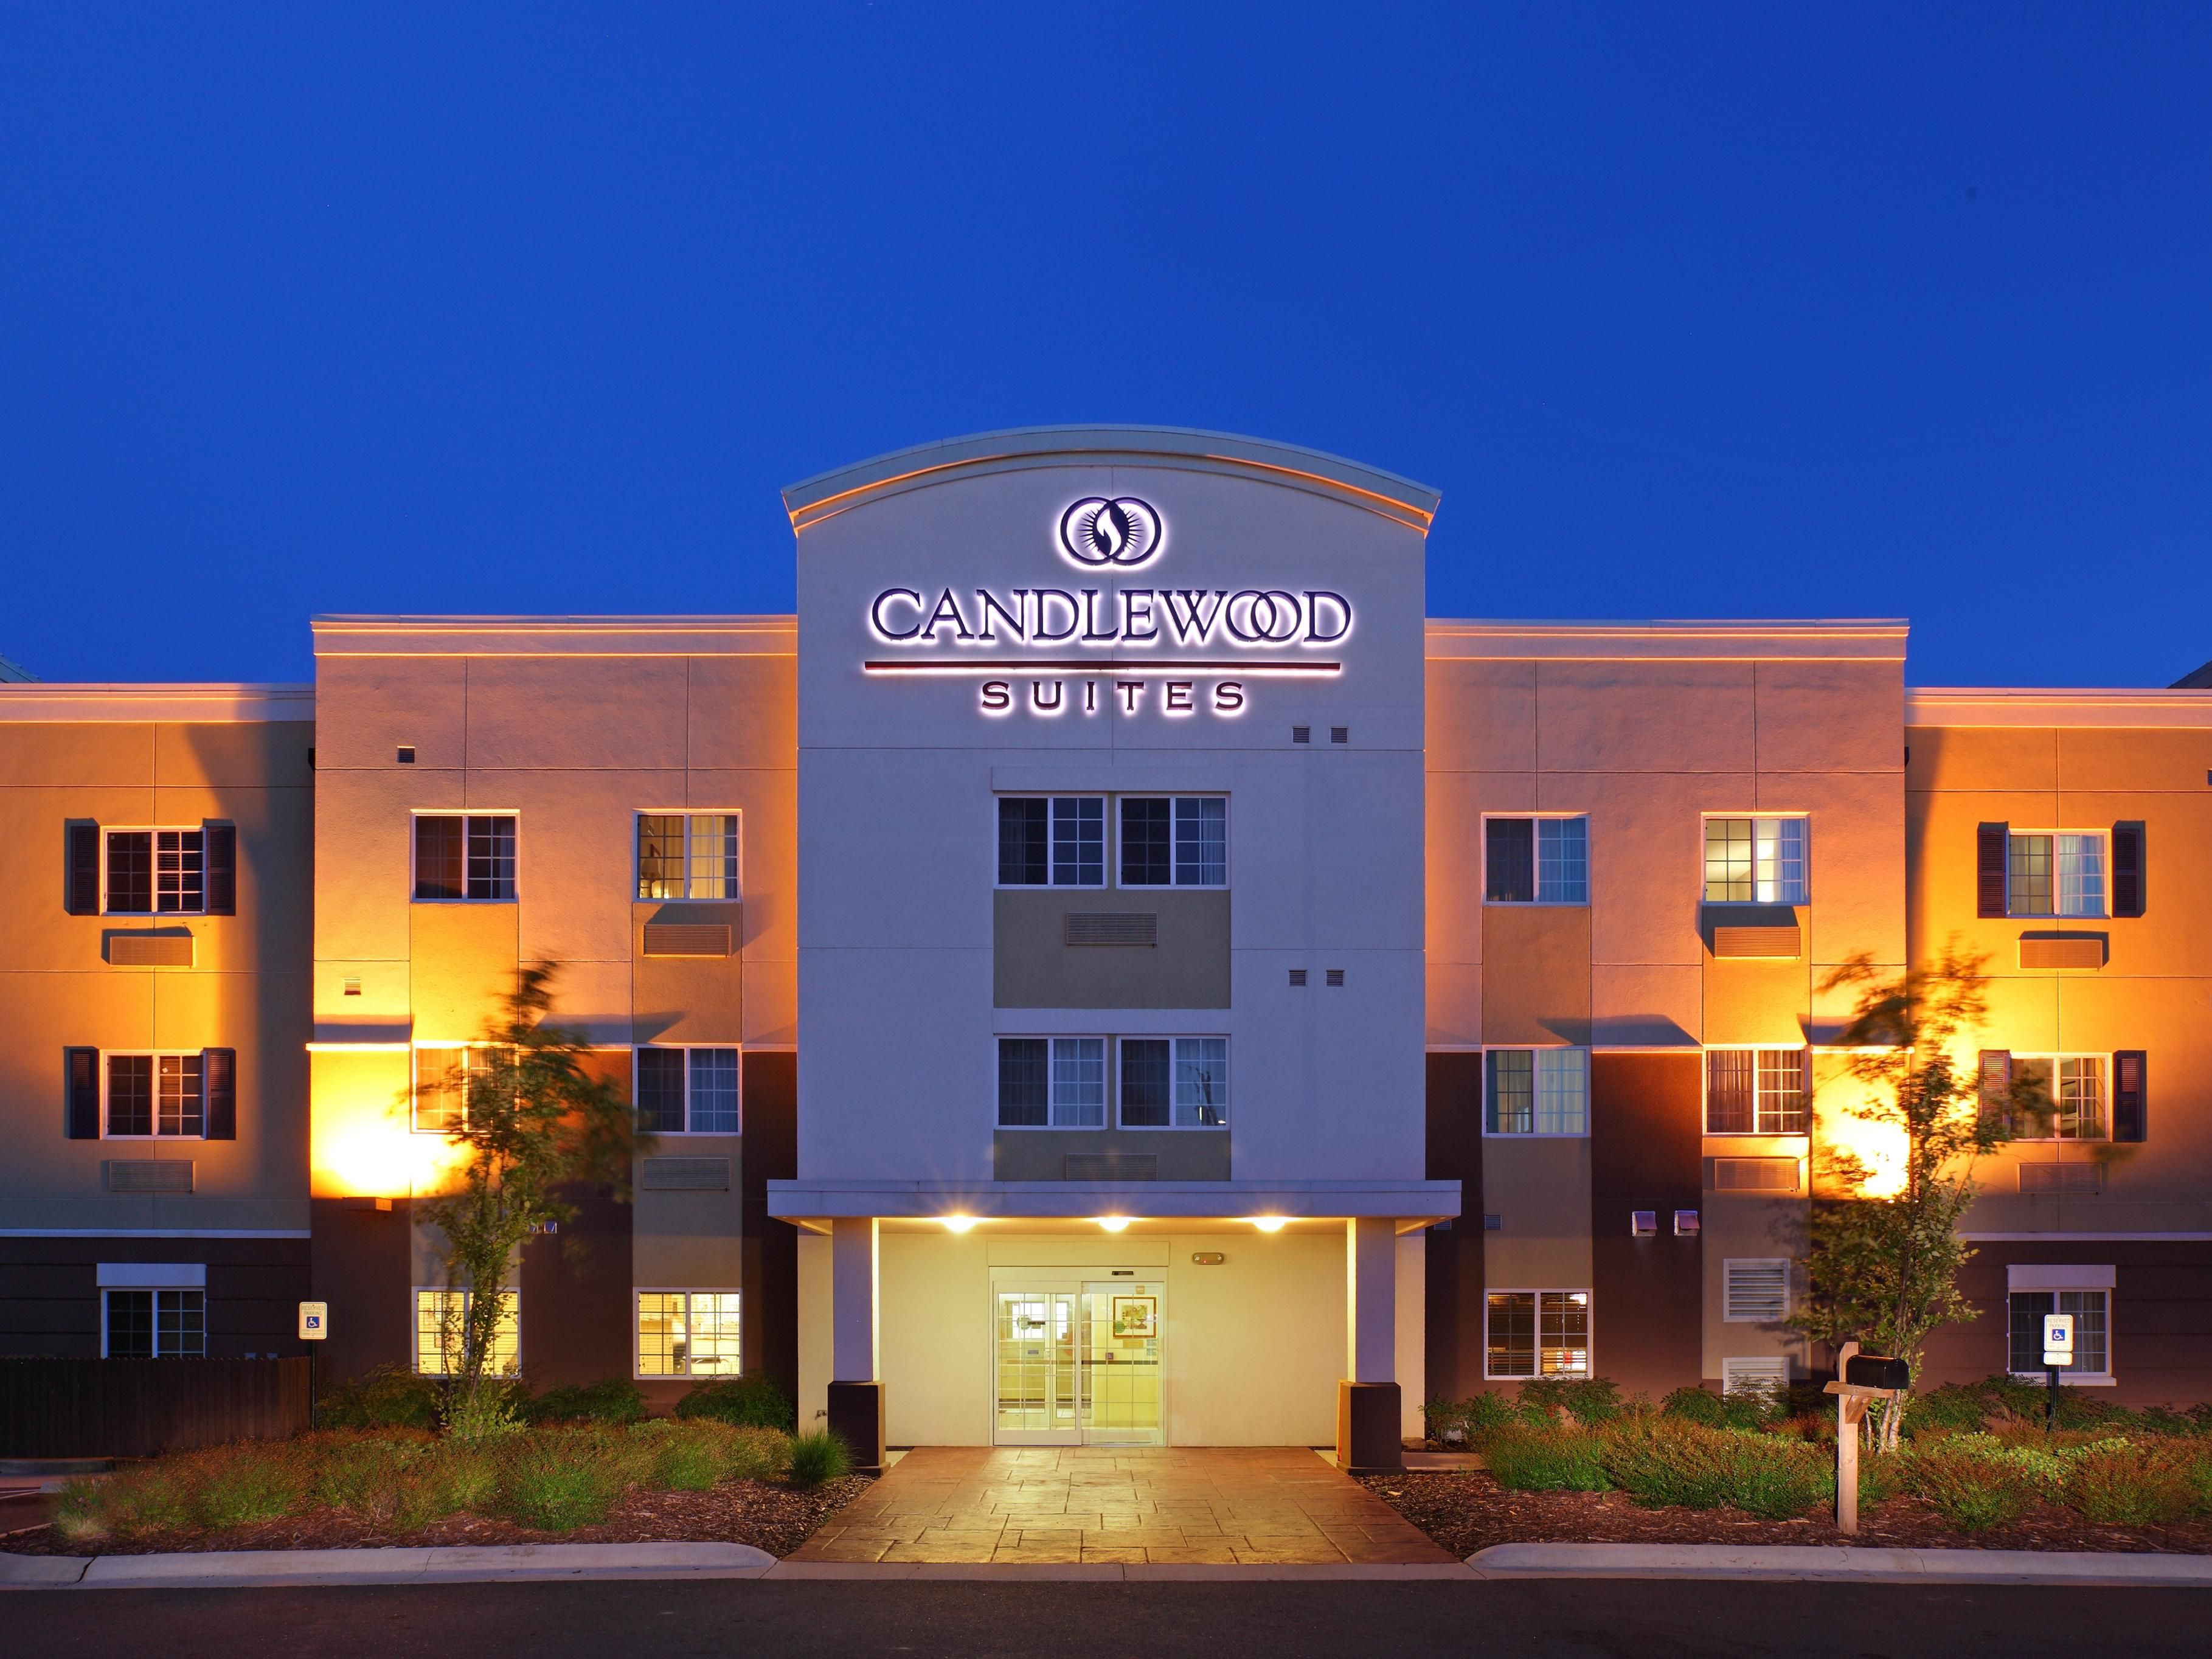 Candlewood Suites Hot Springs Extended Stay Hotel In Hot Springs